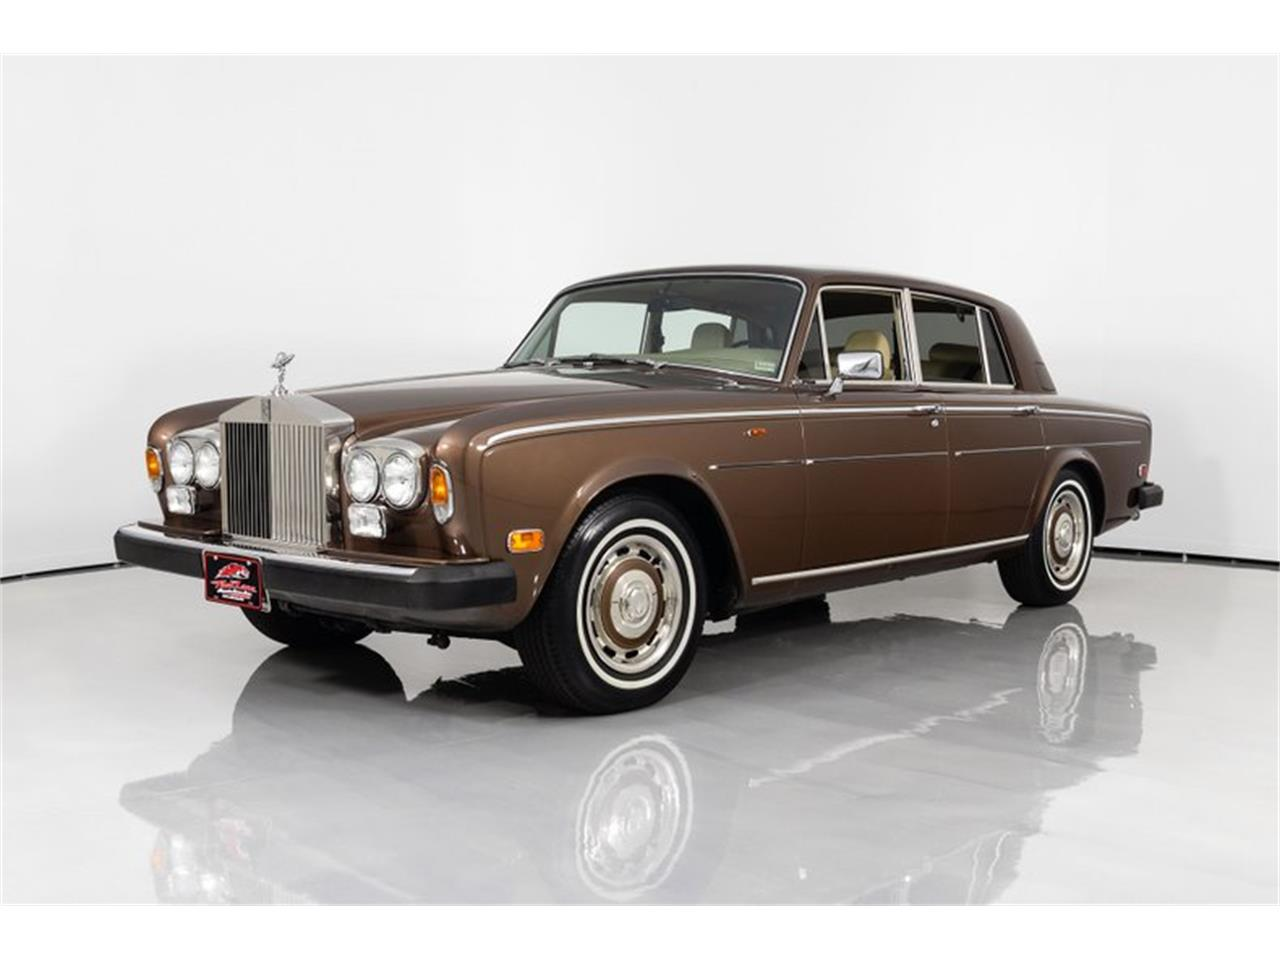 Large Picture of 1981 Rolls-Royce Silver Shadow II located in Missouri - $32,995.00 Offered by Fast Lane Classic Cars Inc. - QZ5G